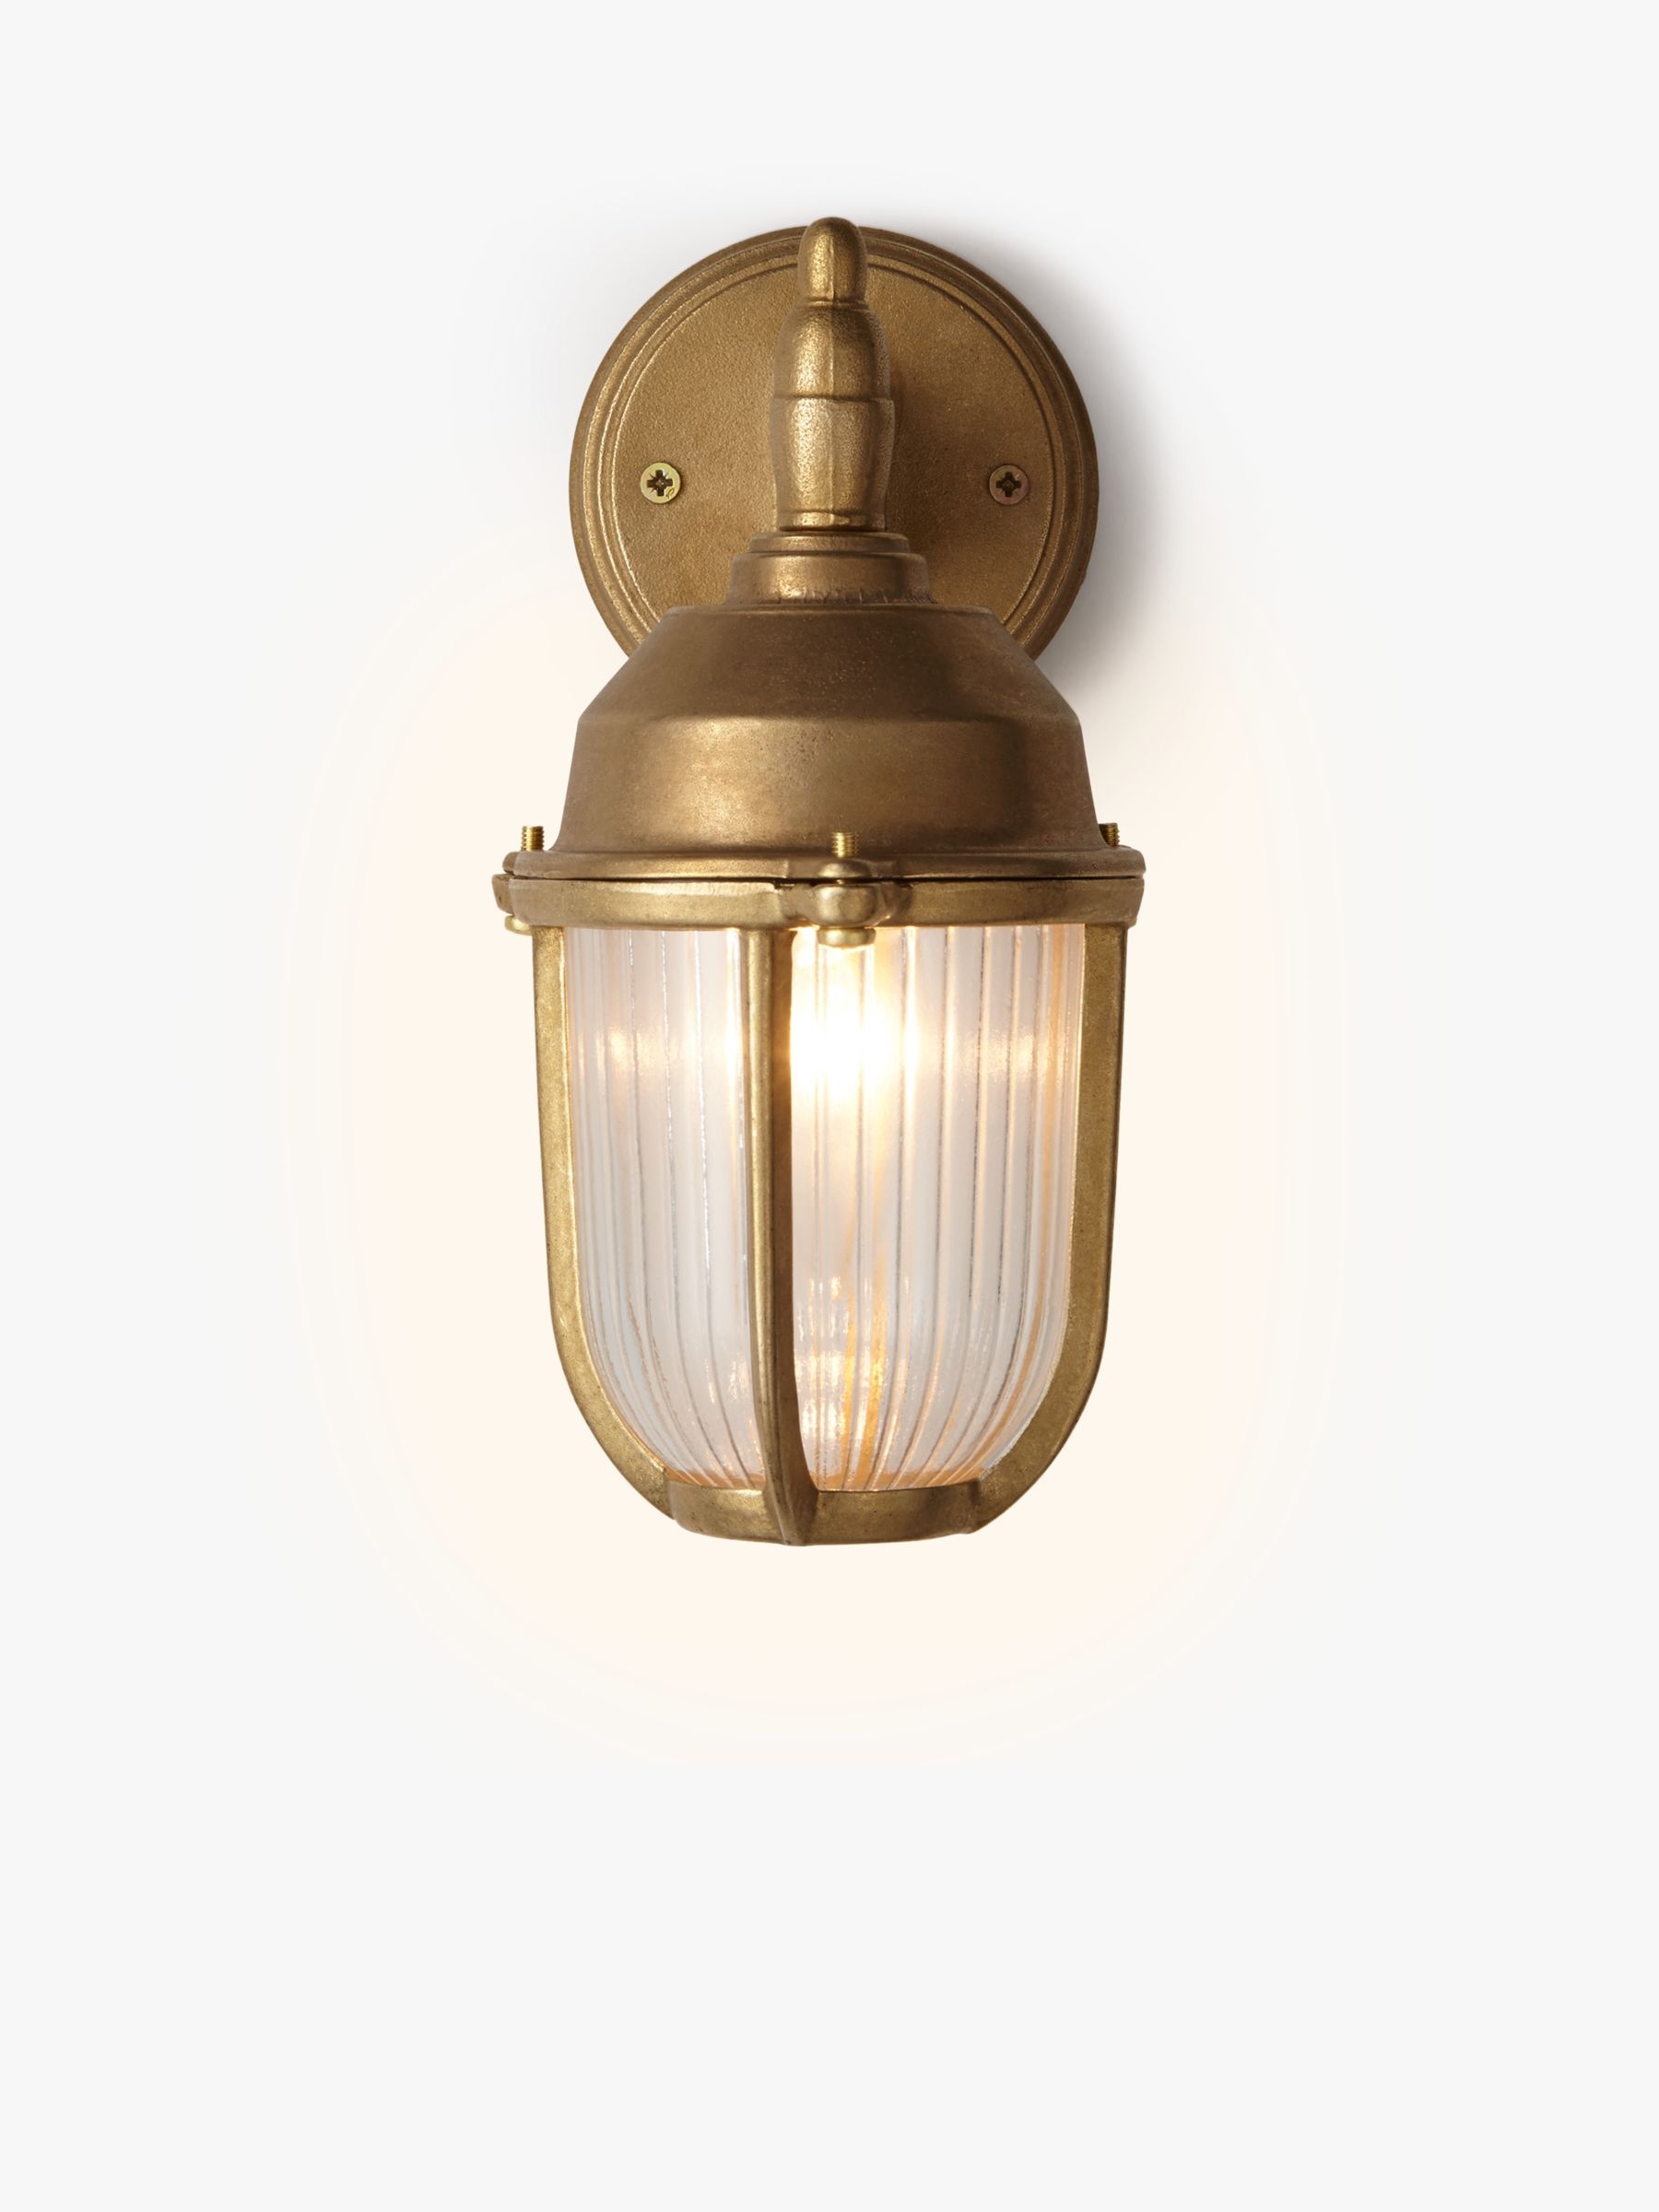 Black Up And Down Led Wall Lights : Buy Nordlux Outdoor Downlight Wall Light, Brass John Lewis